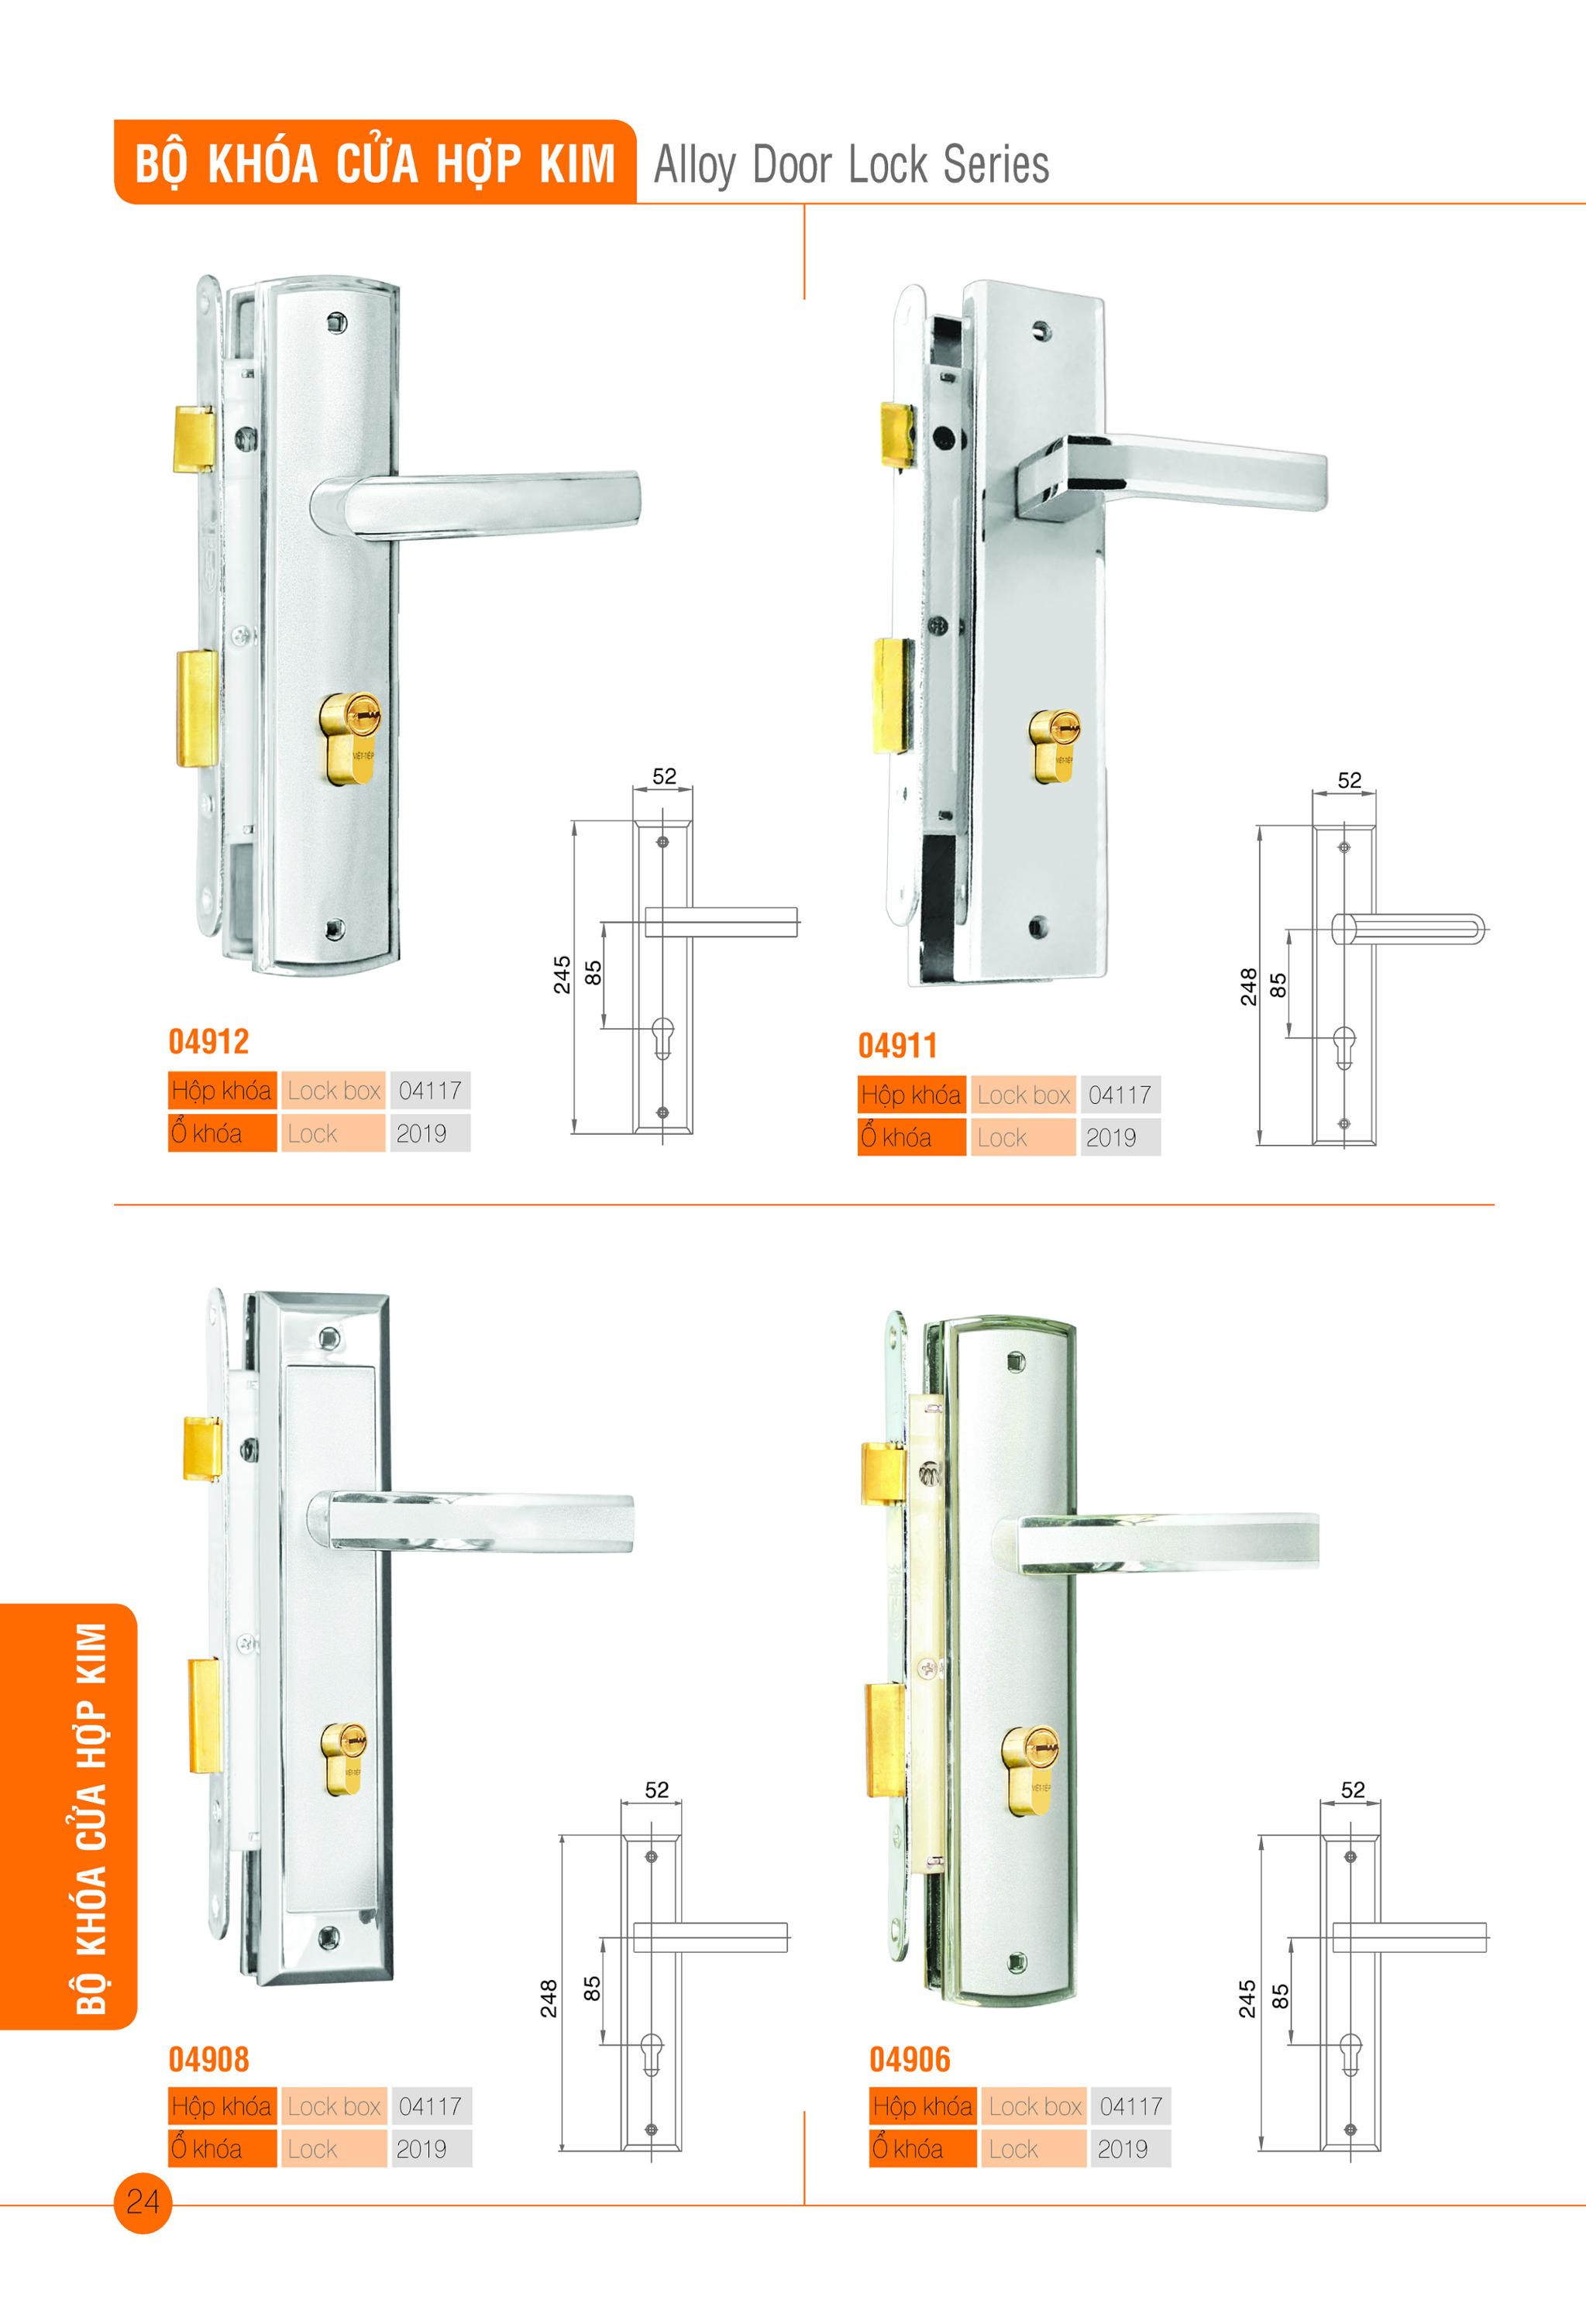 Alloy Door Lock Series (lock box 04117)